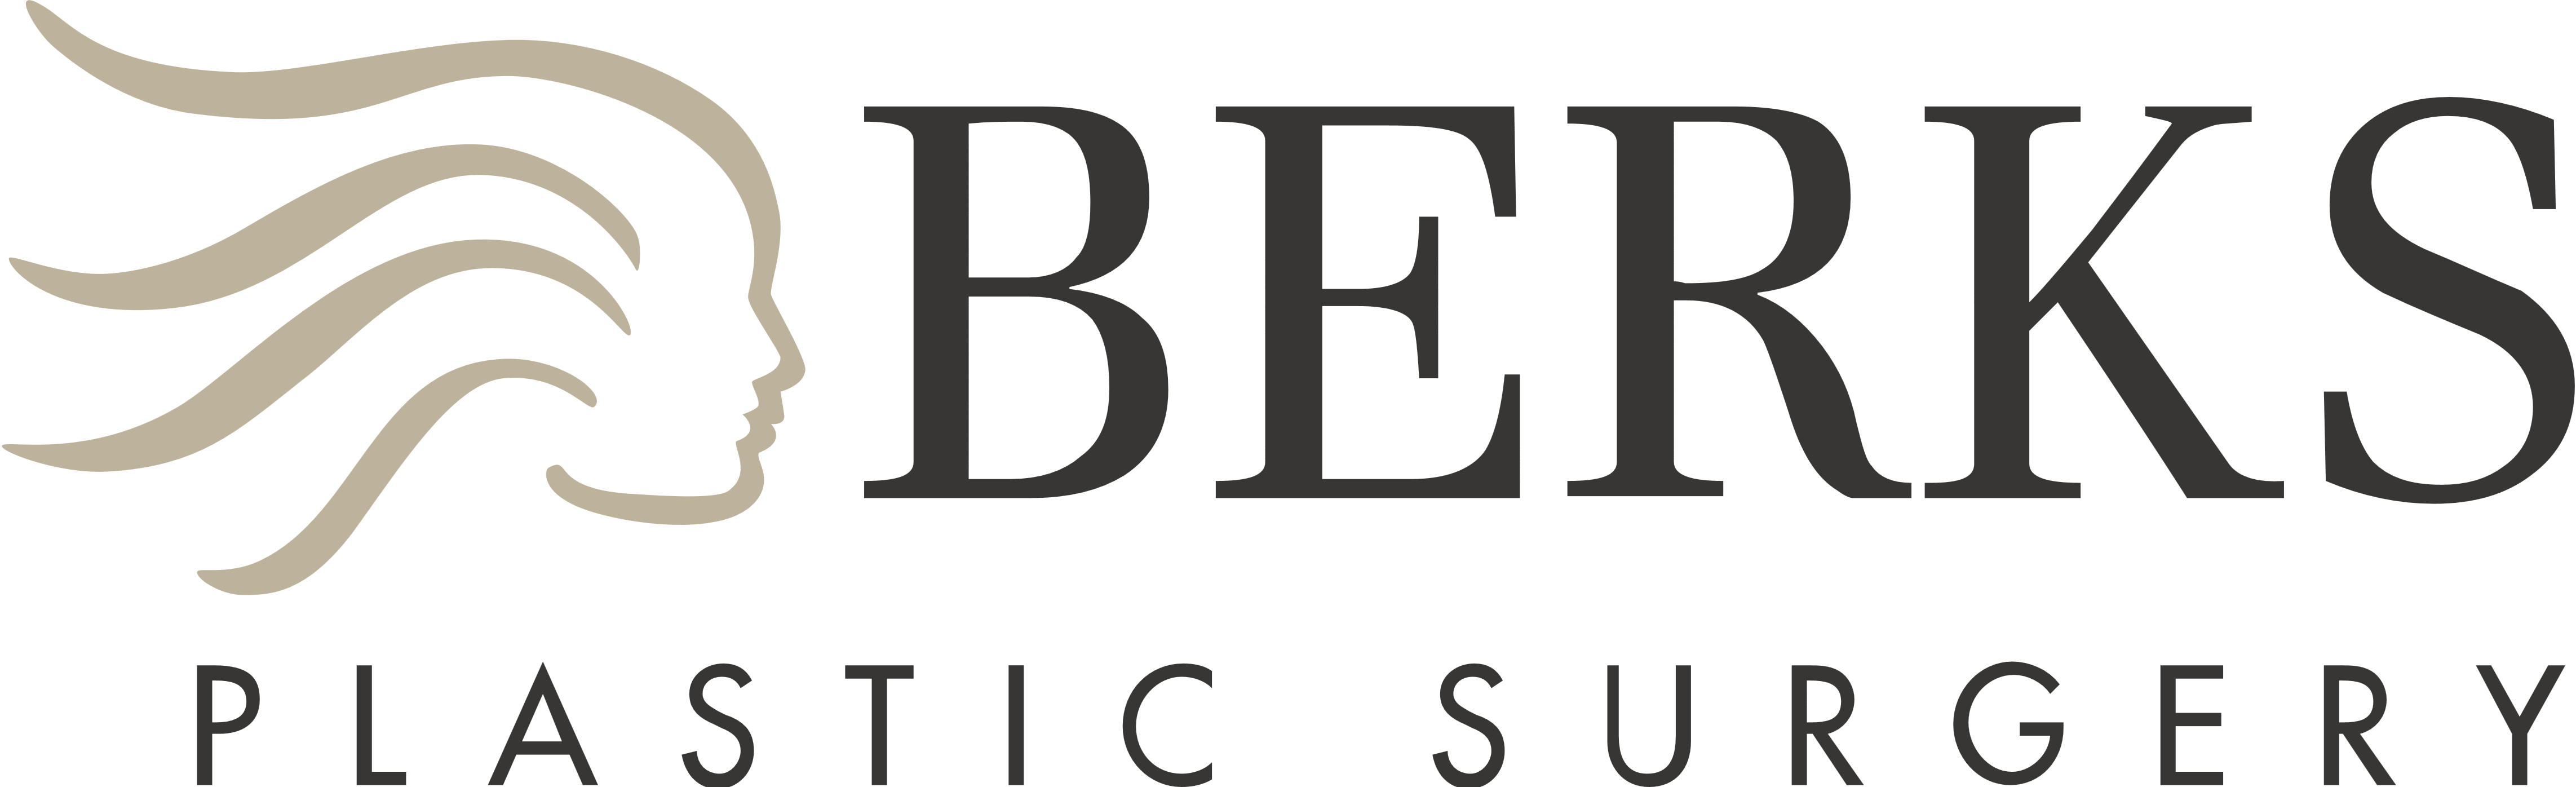 Berks Plastic Surgery Logos Download